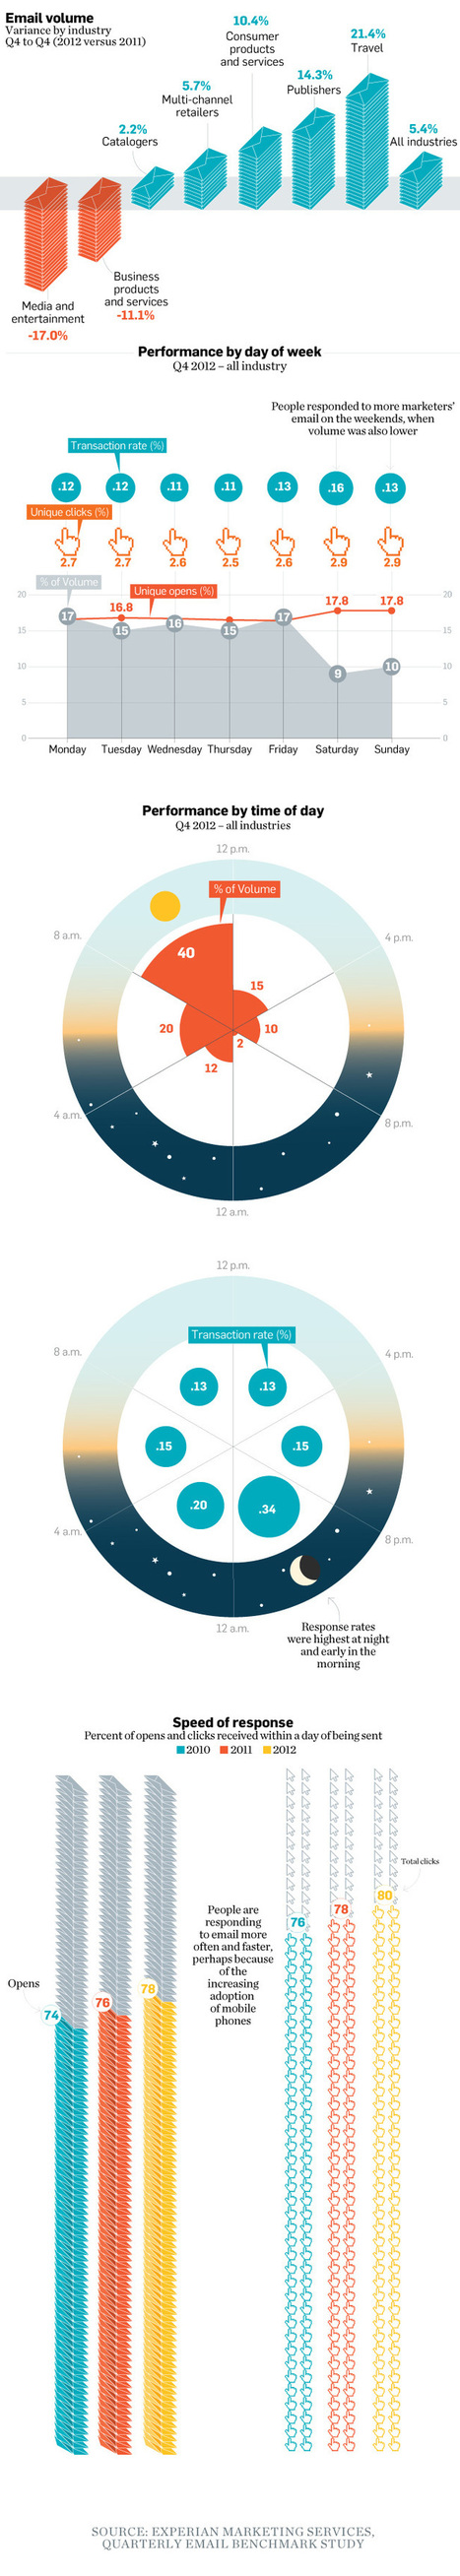 6 case studies & infographics: the optimal time to send emails | AtDotCom Social media | Scoop.it